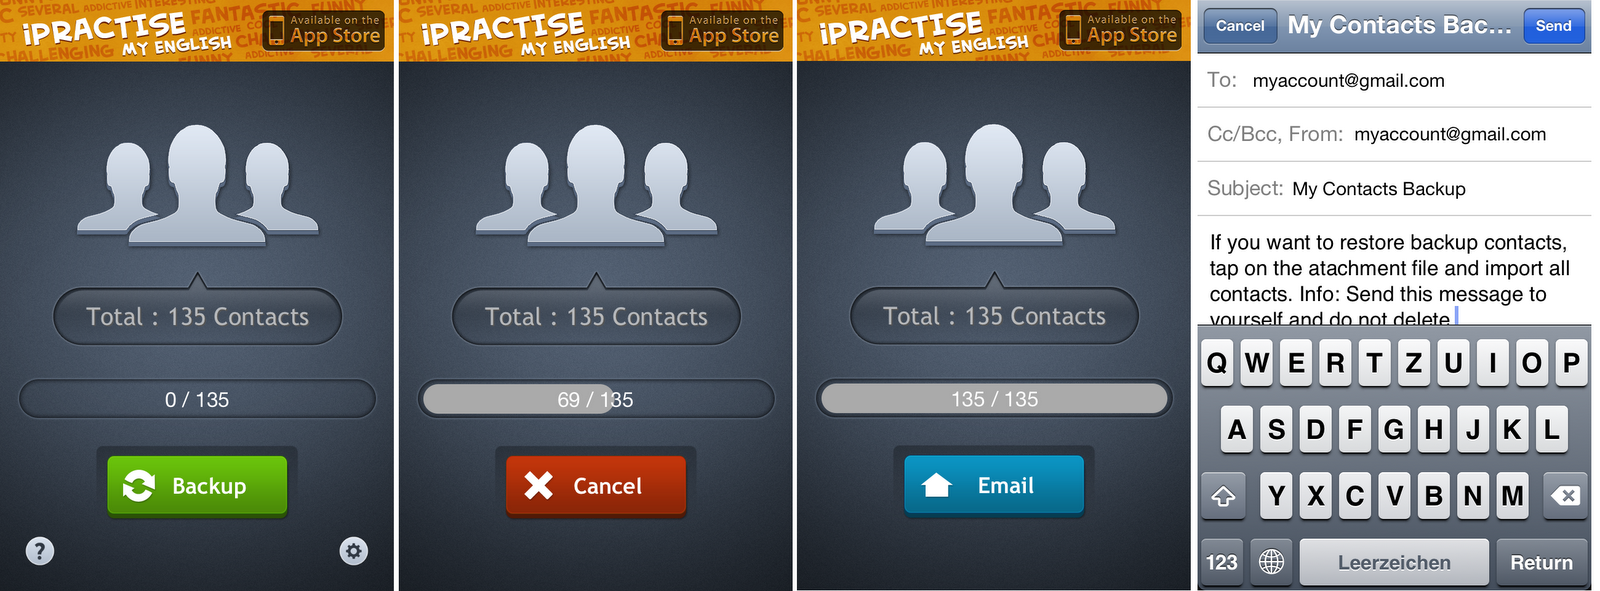 iPhone contacts backup with free app | iPhone contacts